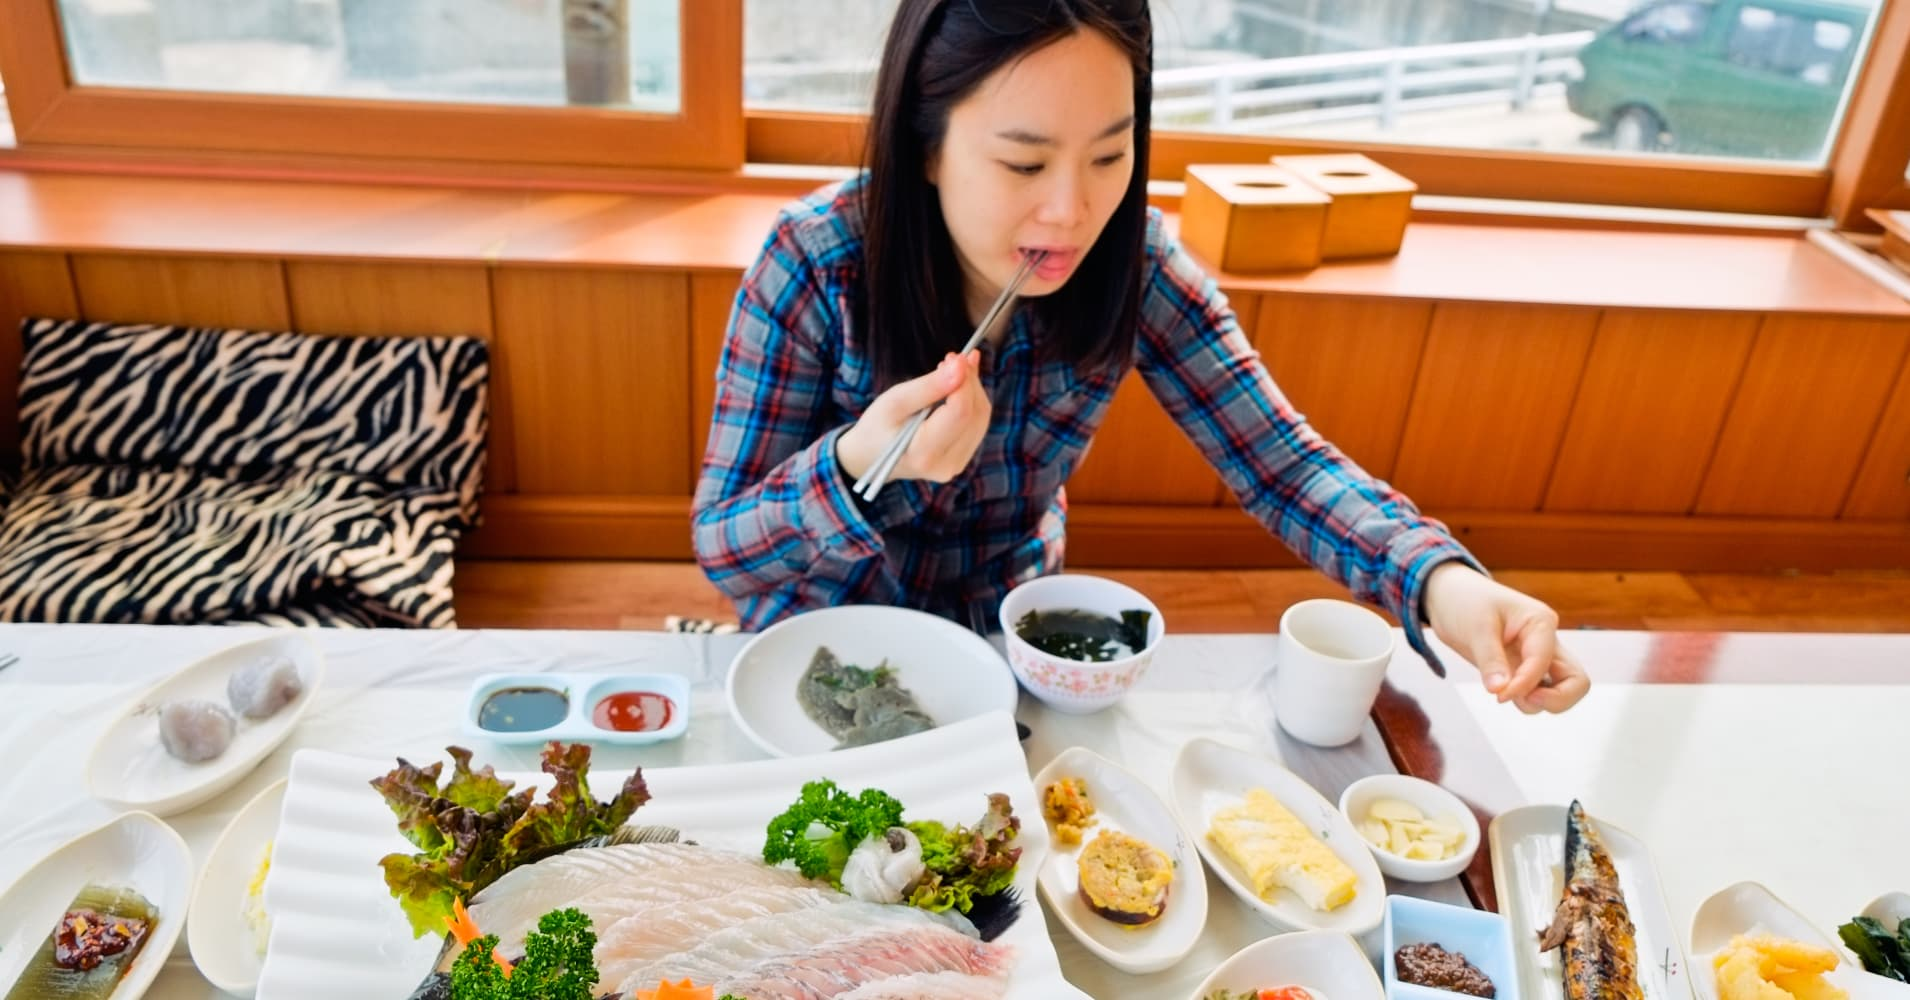 Mukbang How Koreans Become Stars Through Their Love Of Food